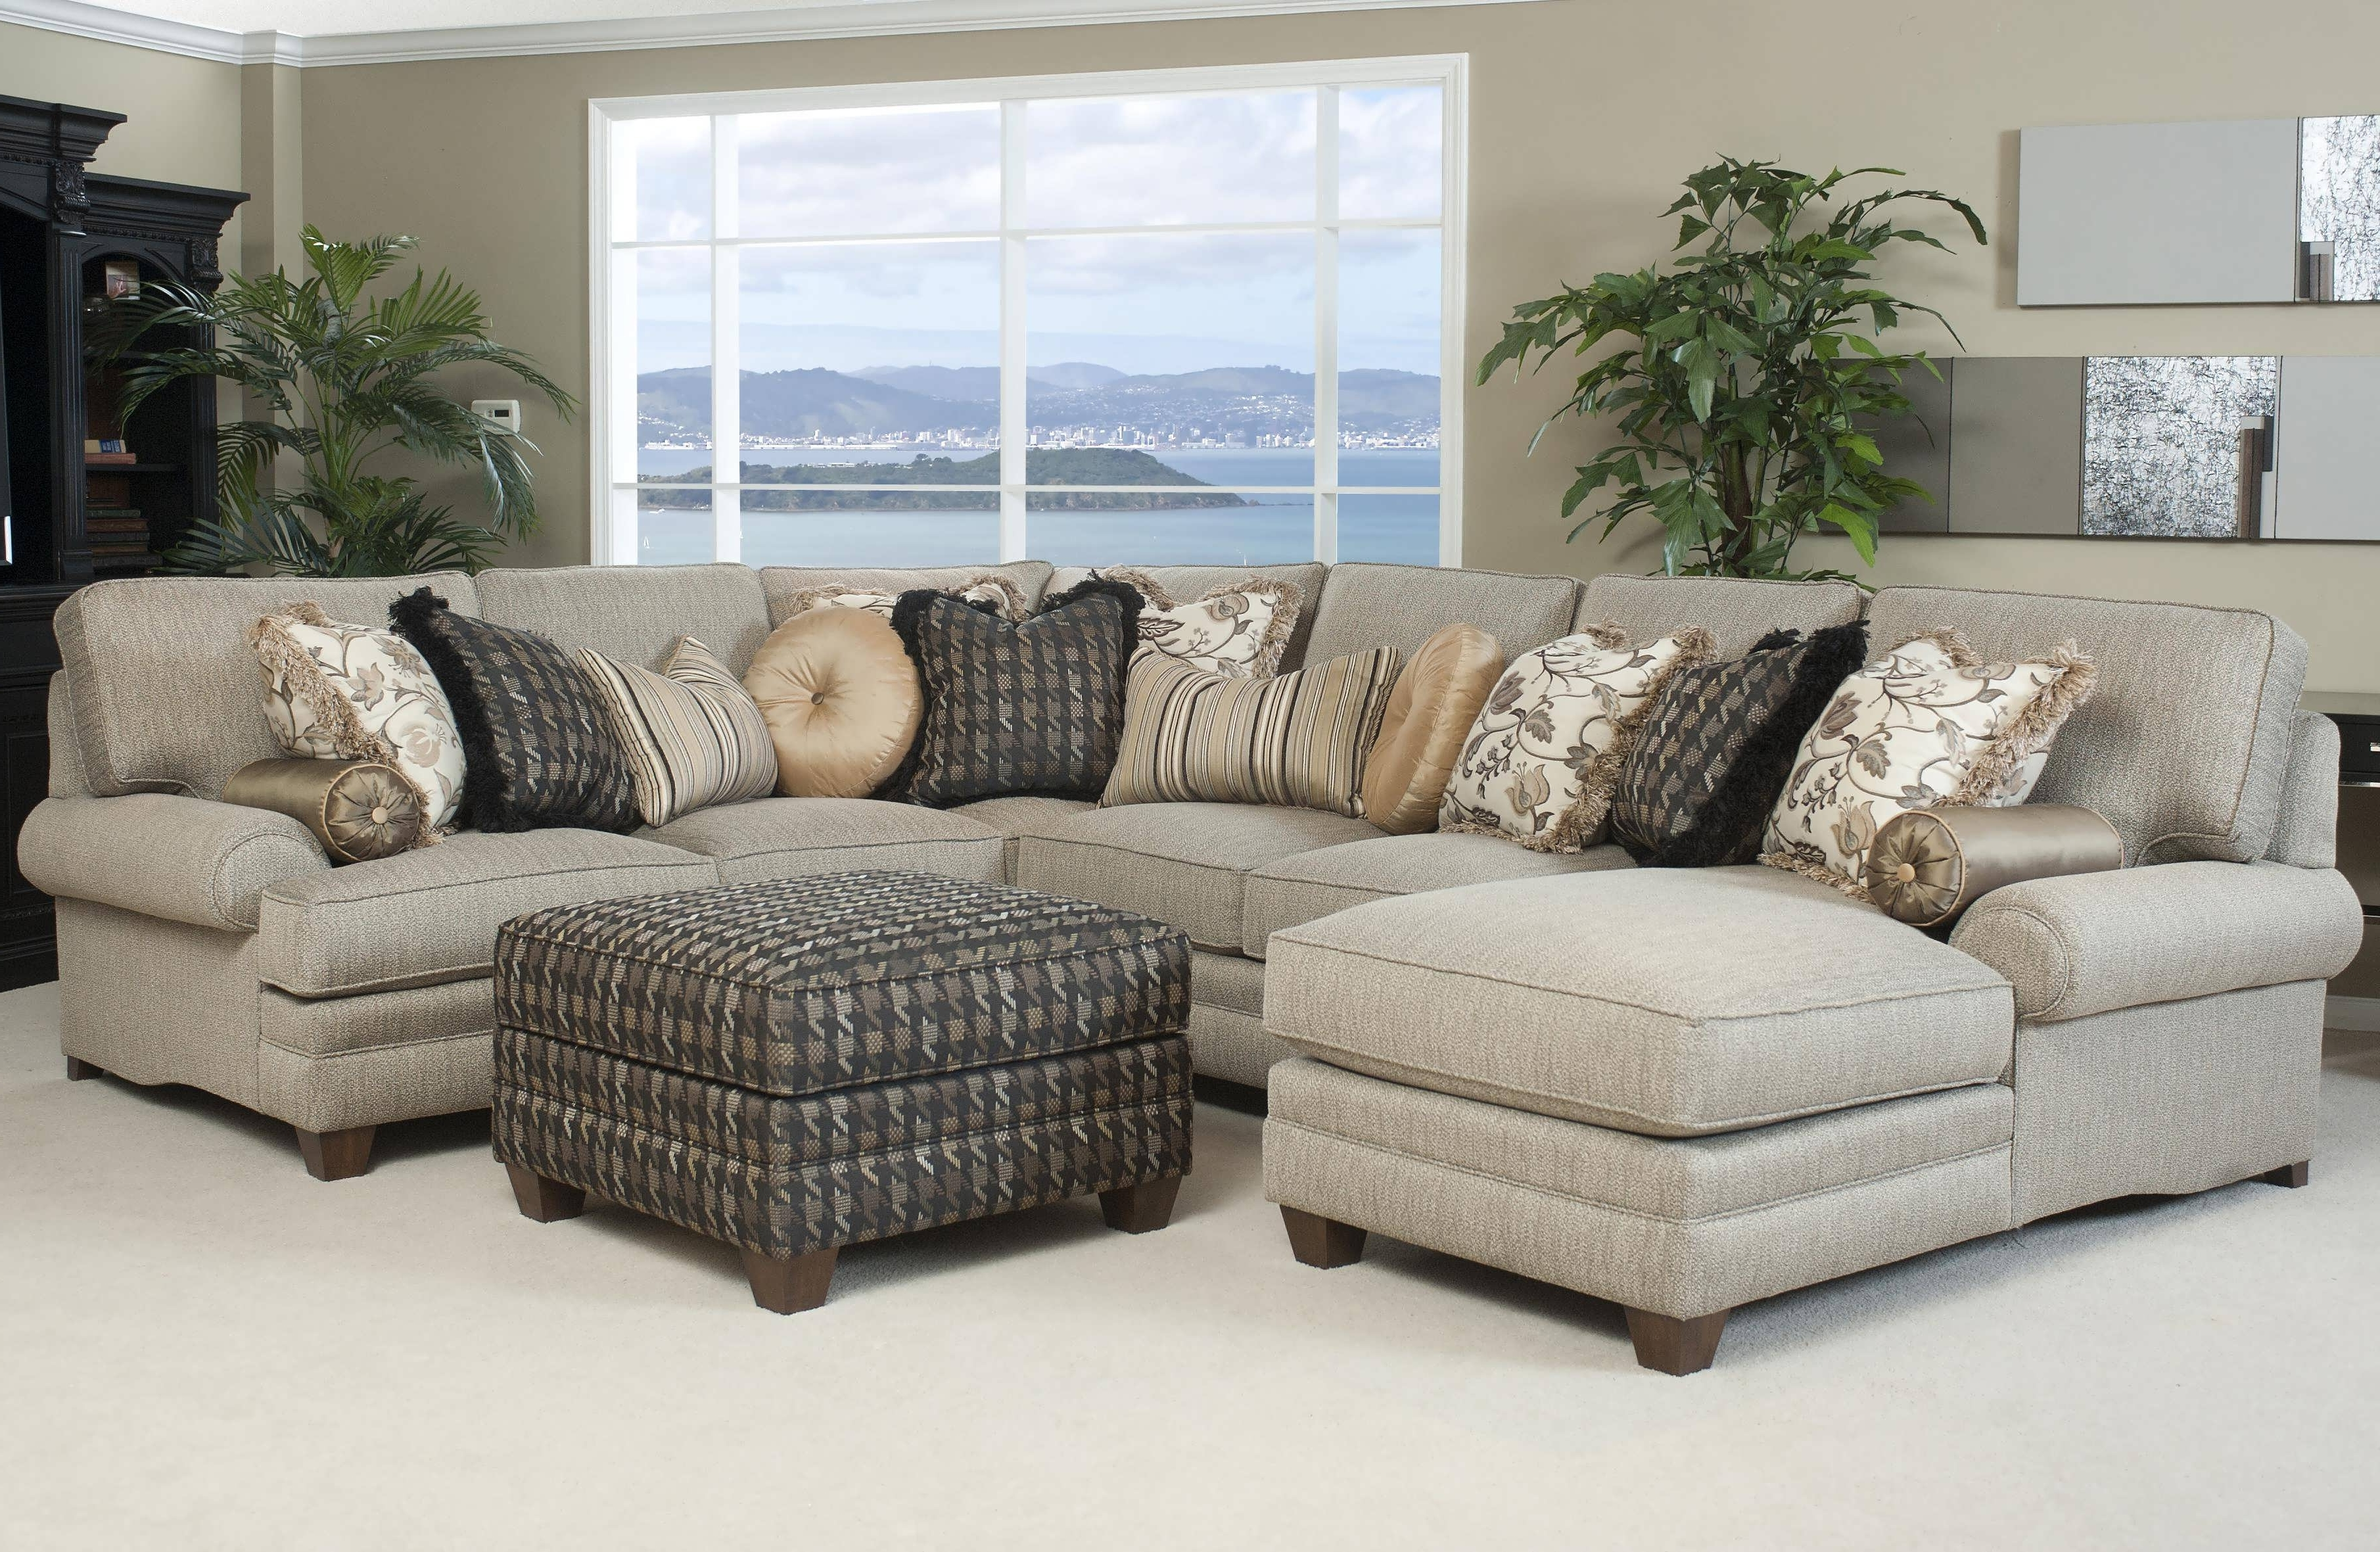 Best And Newest Sofa : Sectional Leather Sectional Sofas And Sectionals Leather For Sofa Chaise Sectionals (View 3 of 15)